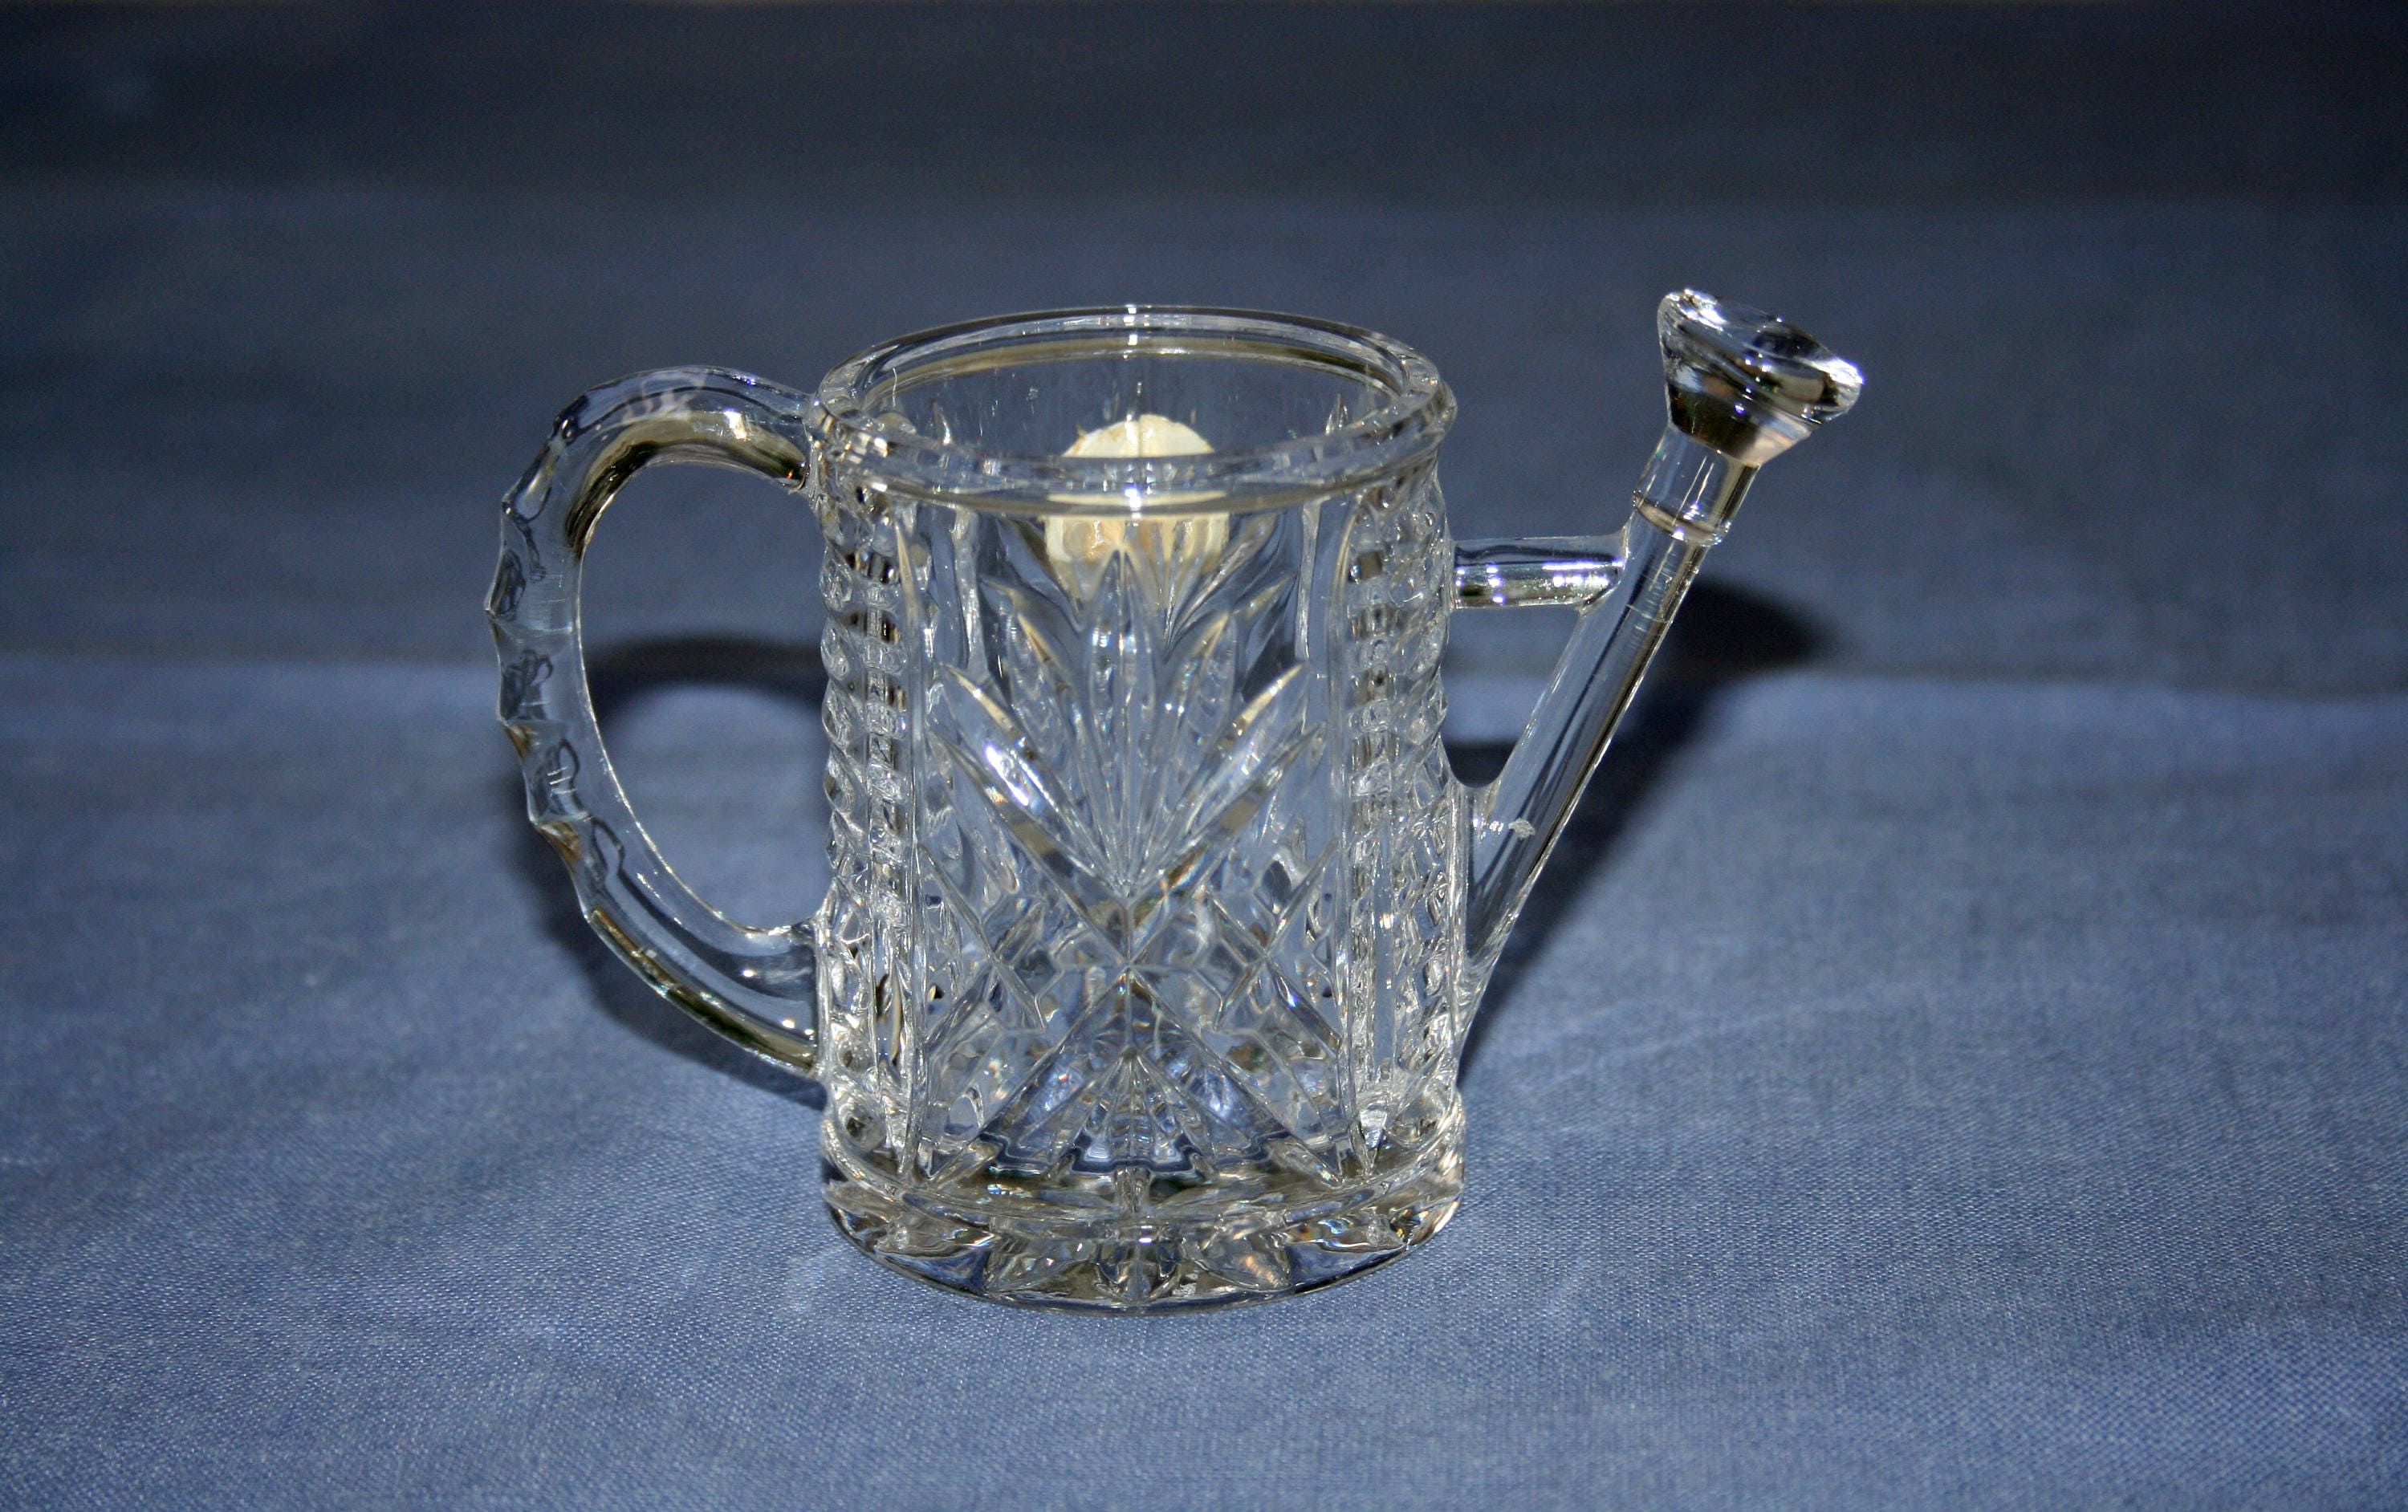 Vintage Princess House Crystal Watering Can Candle Holder